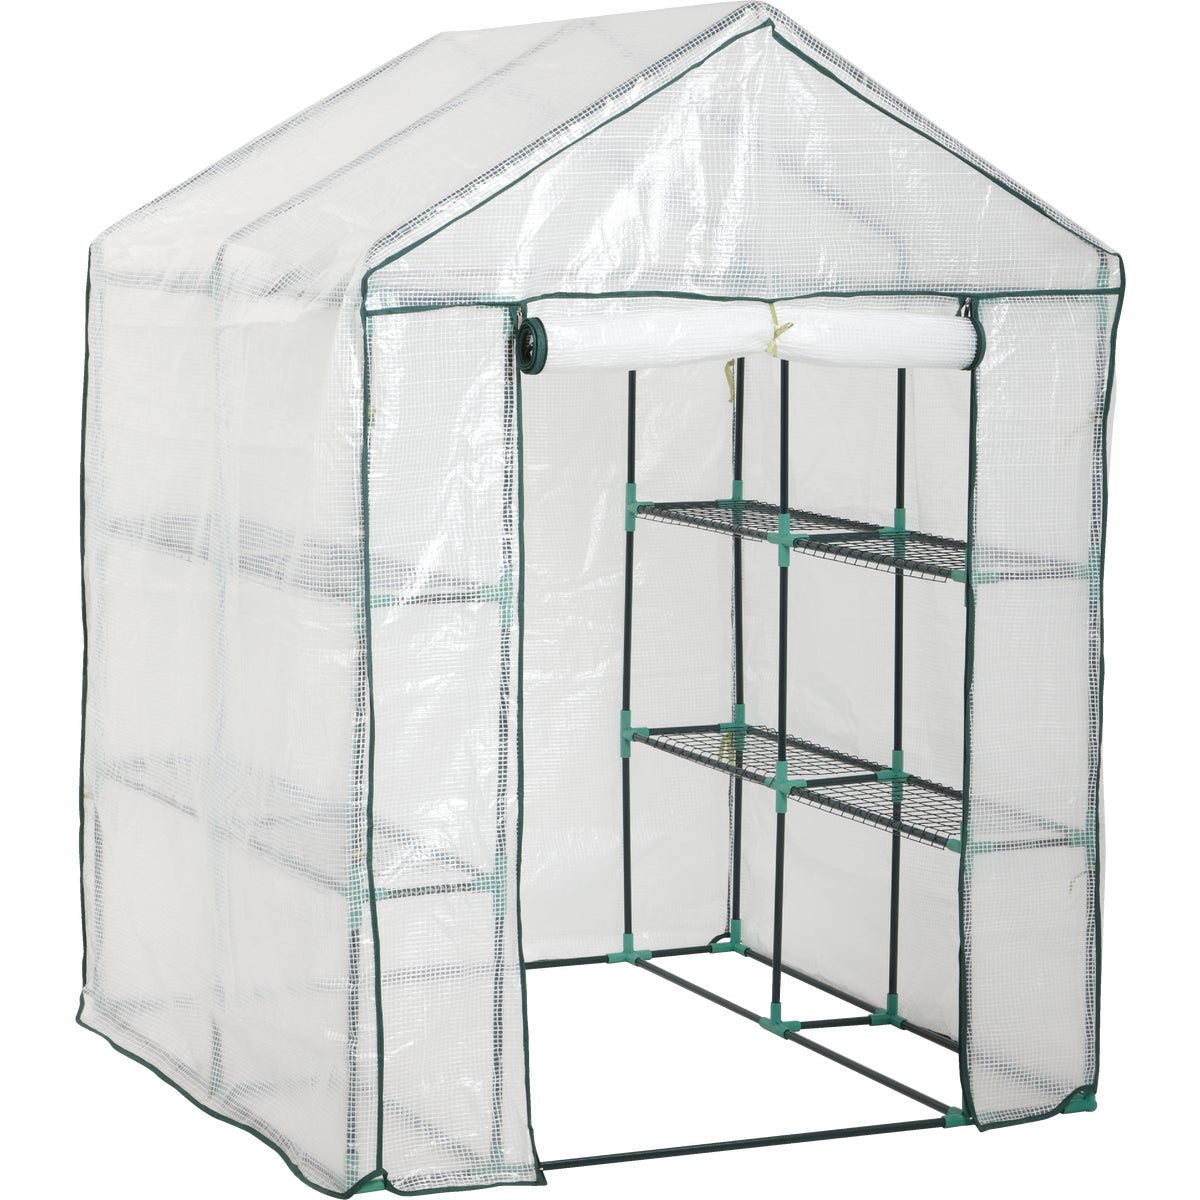 LARGE WALK-IN GREENHOUSE - HS1116 by Do it Best